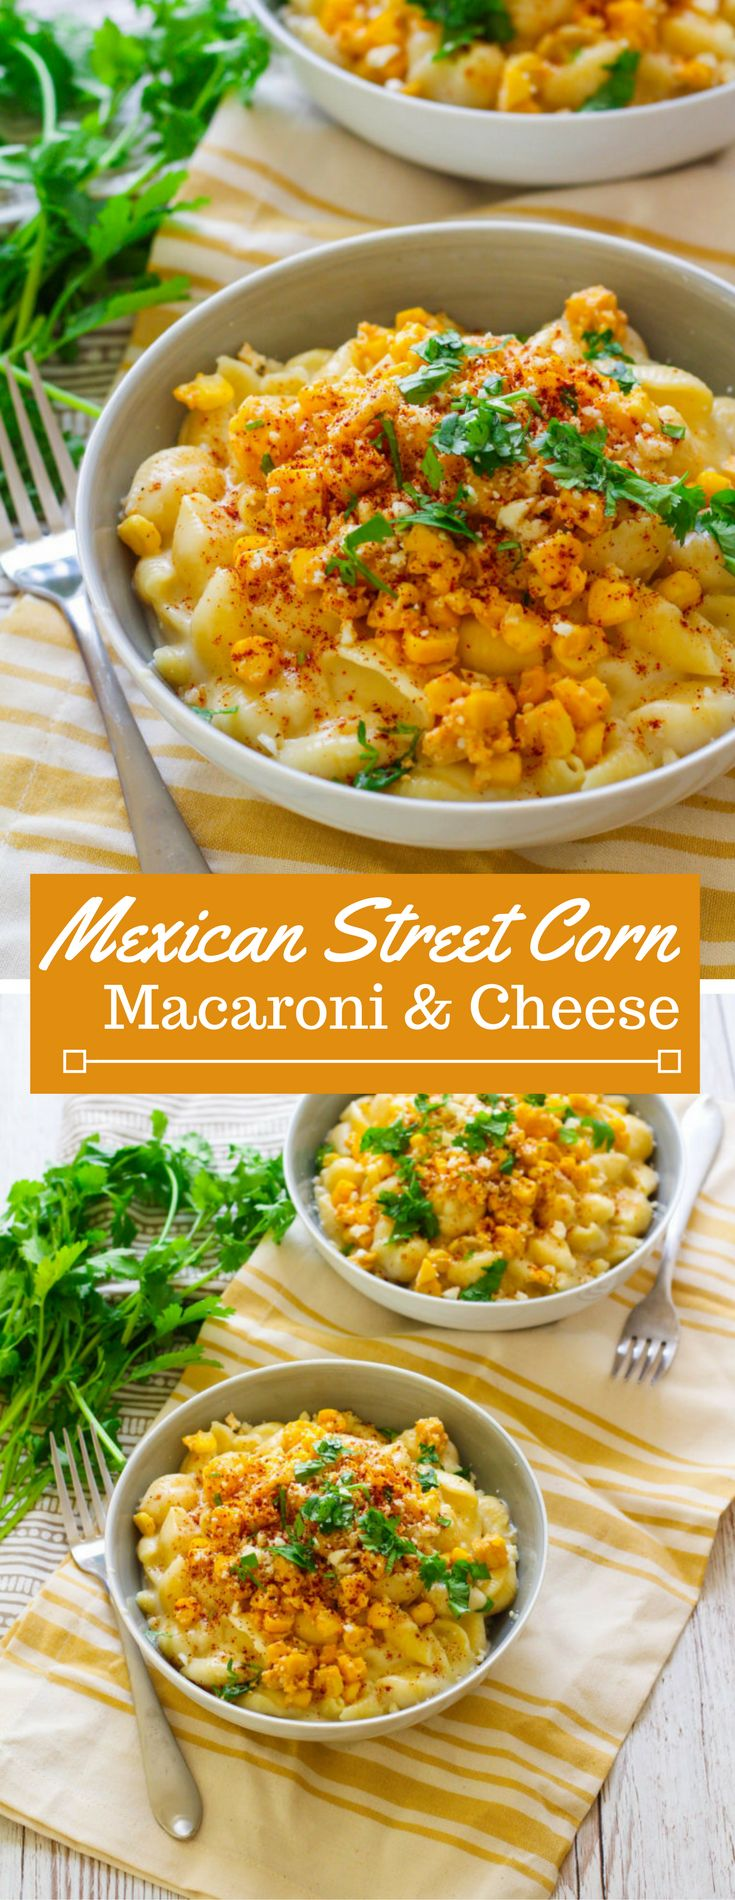 Combine the best of both worlds: cheesy, creamy homemade macaroni and cheese with the savory, slightly spicy goodness of Mexican street corn.